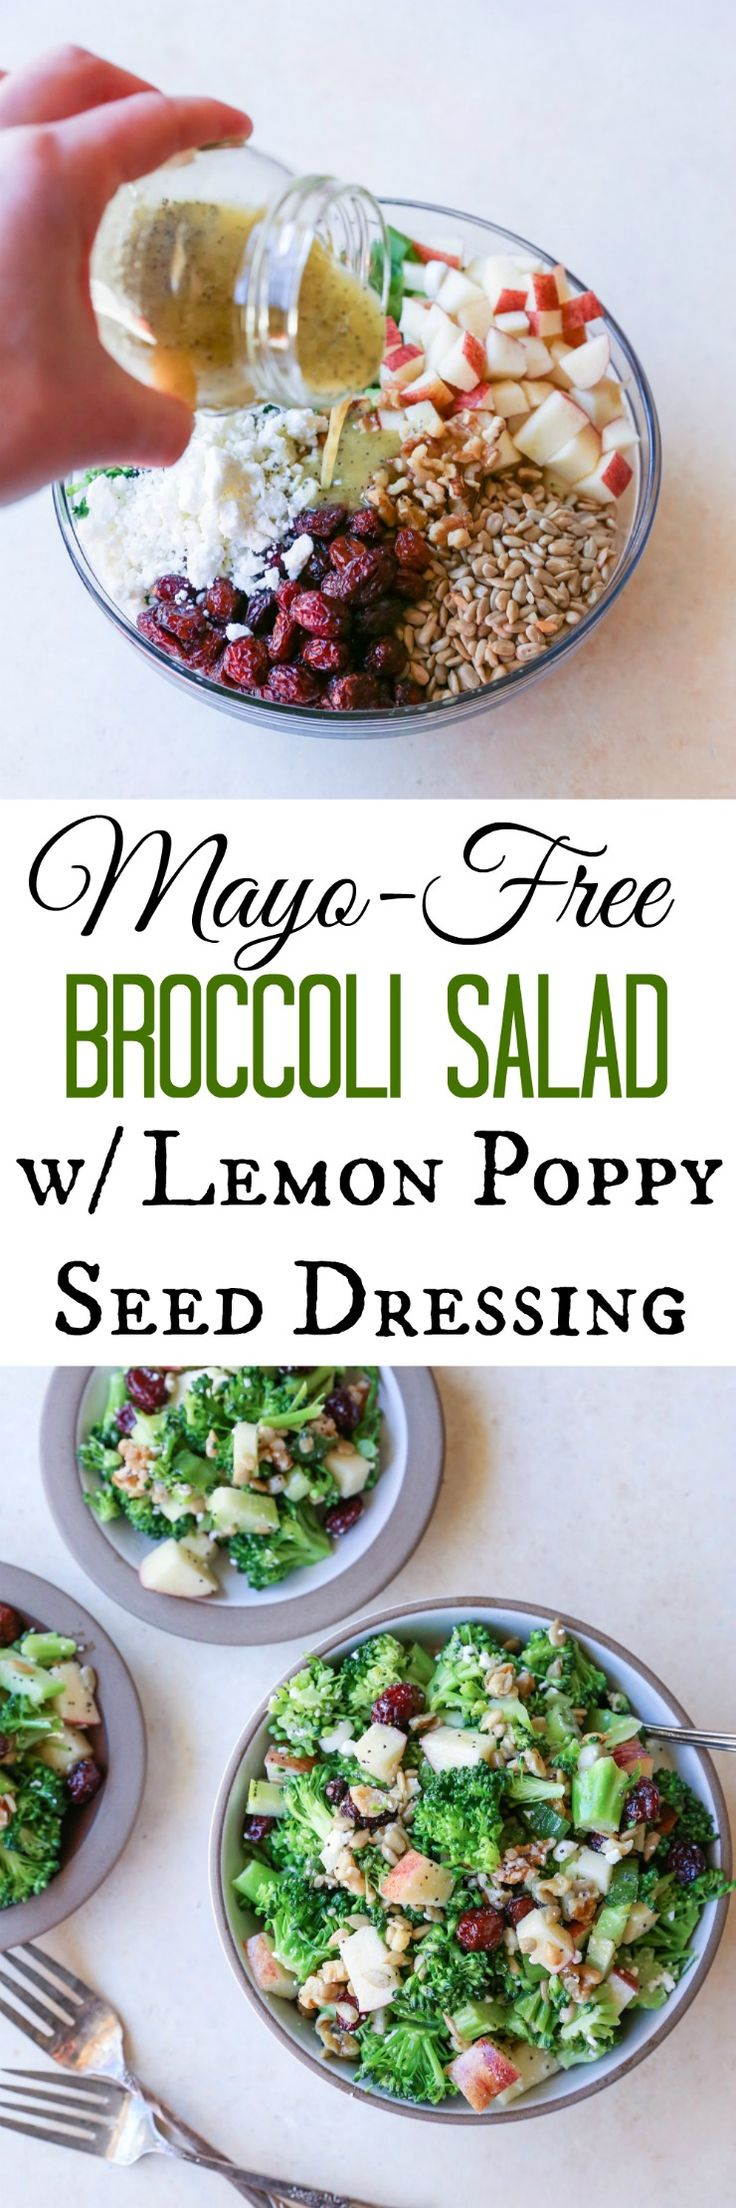 Mayo-Free Broccoli Salad with Lemon Poppy Seed Dressing | TheRoastedRoot.net #healthy #vegetarian #recipe